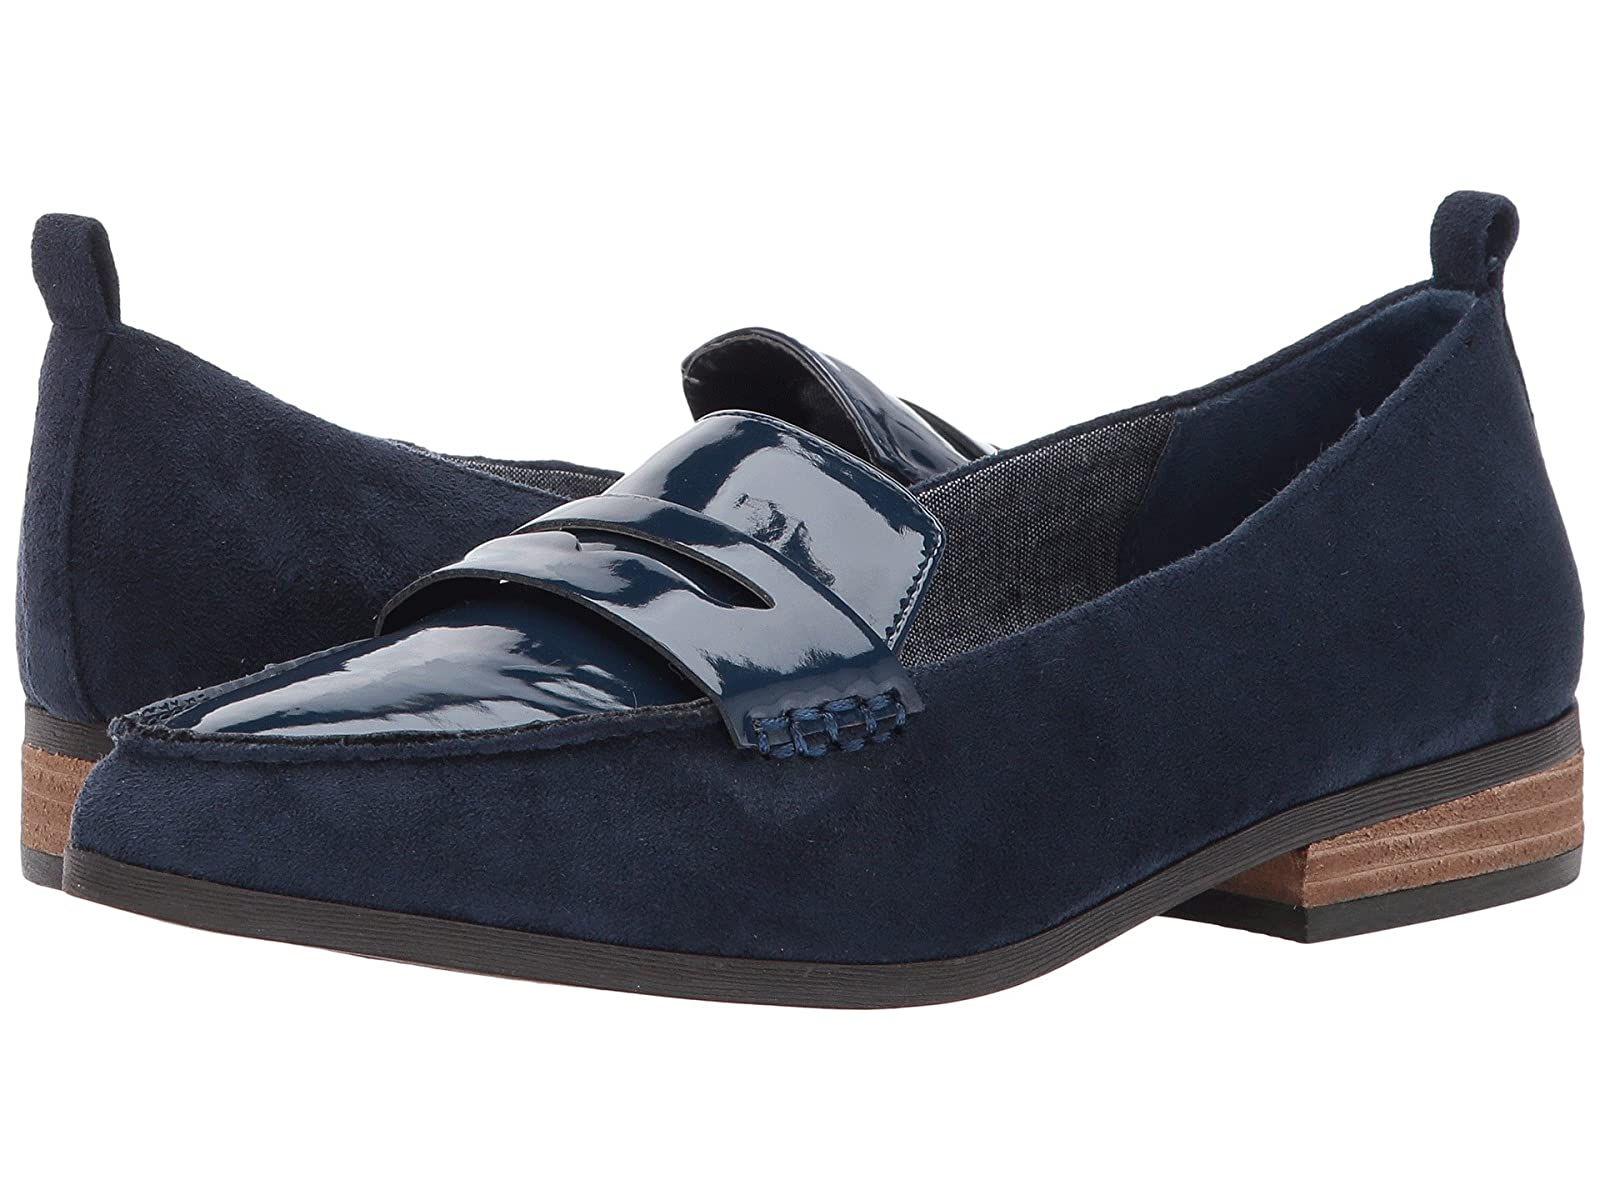 Dr. Scholl's EclipseCheap and distinctive eye-catching shoes